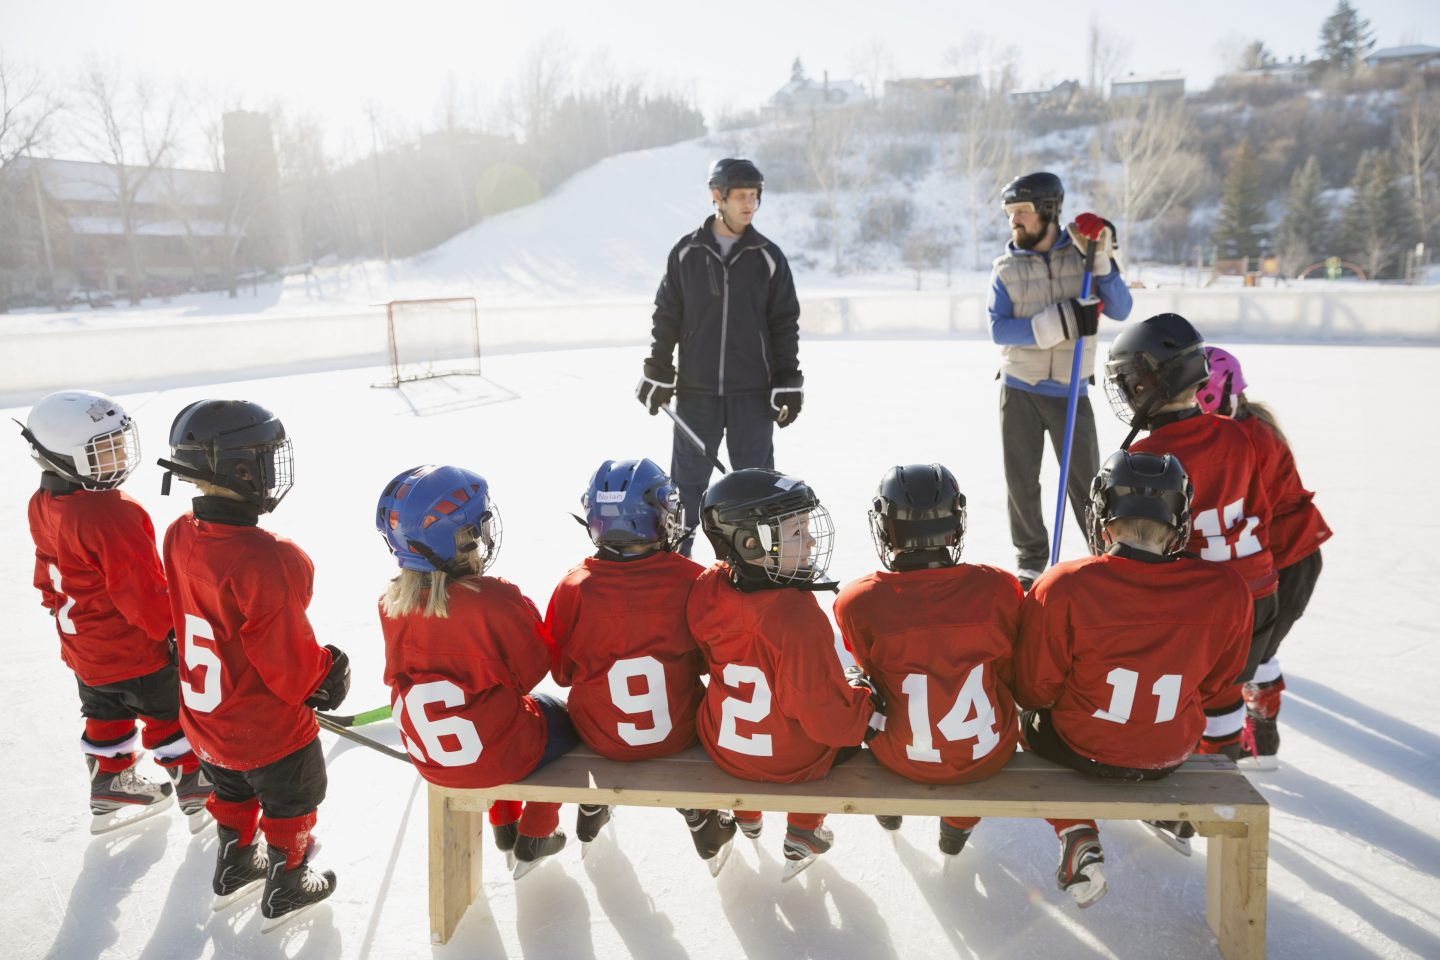 Coaches and ice hockey team on rink | Coaching